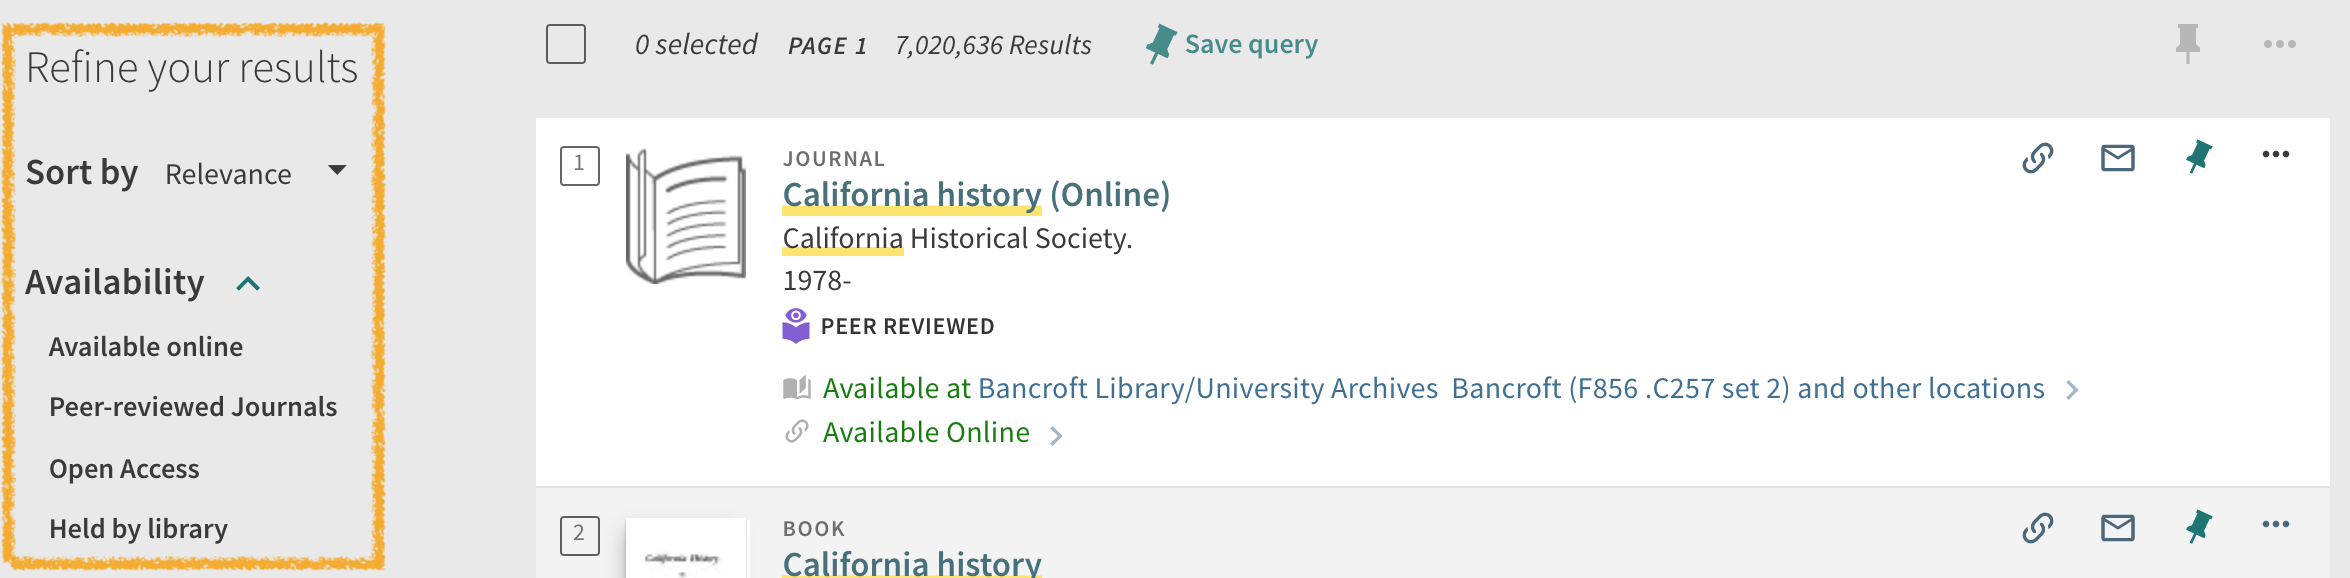 UC Library Search Refine Your Results left side navigation menu